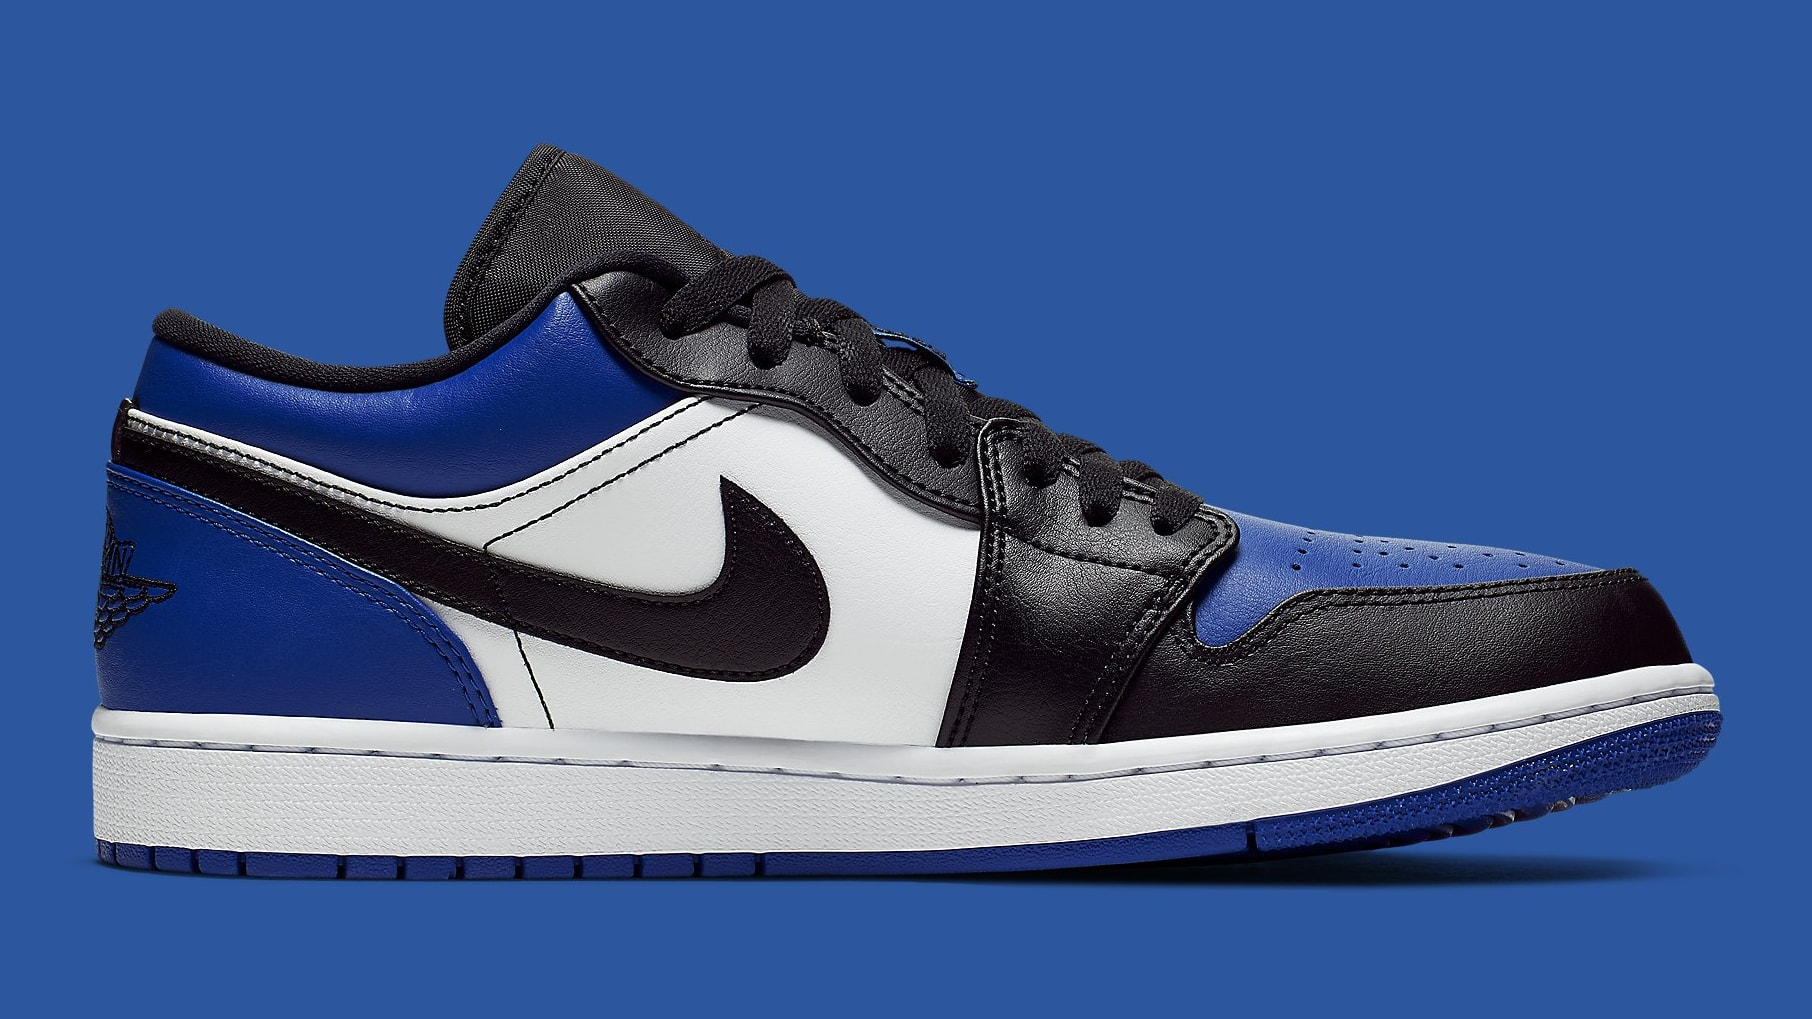 Air Jordan 1 Low Royal Toe Release Date CQ9446-400 Medial